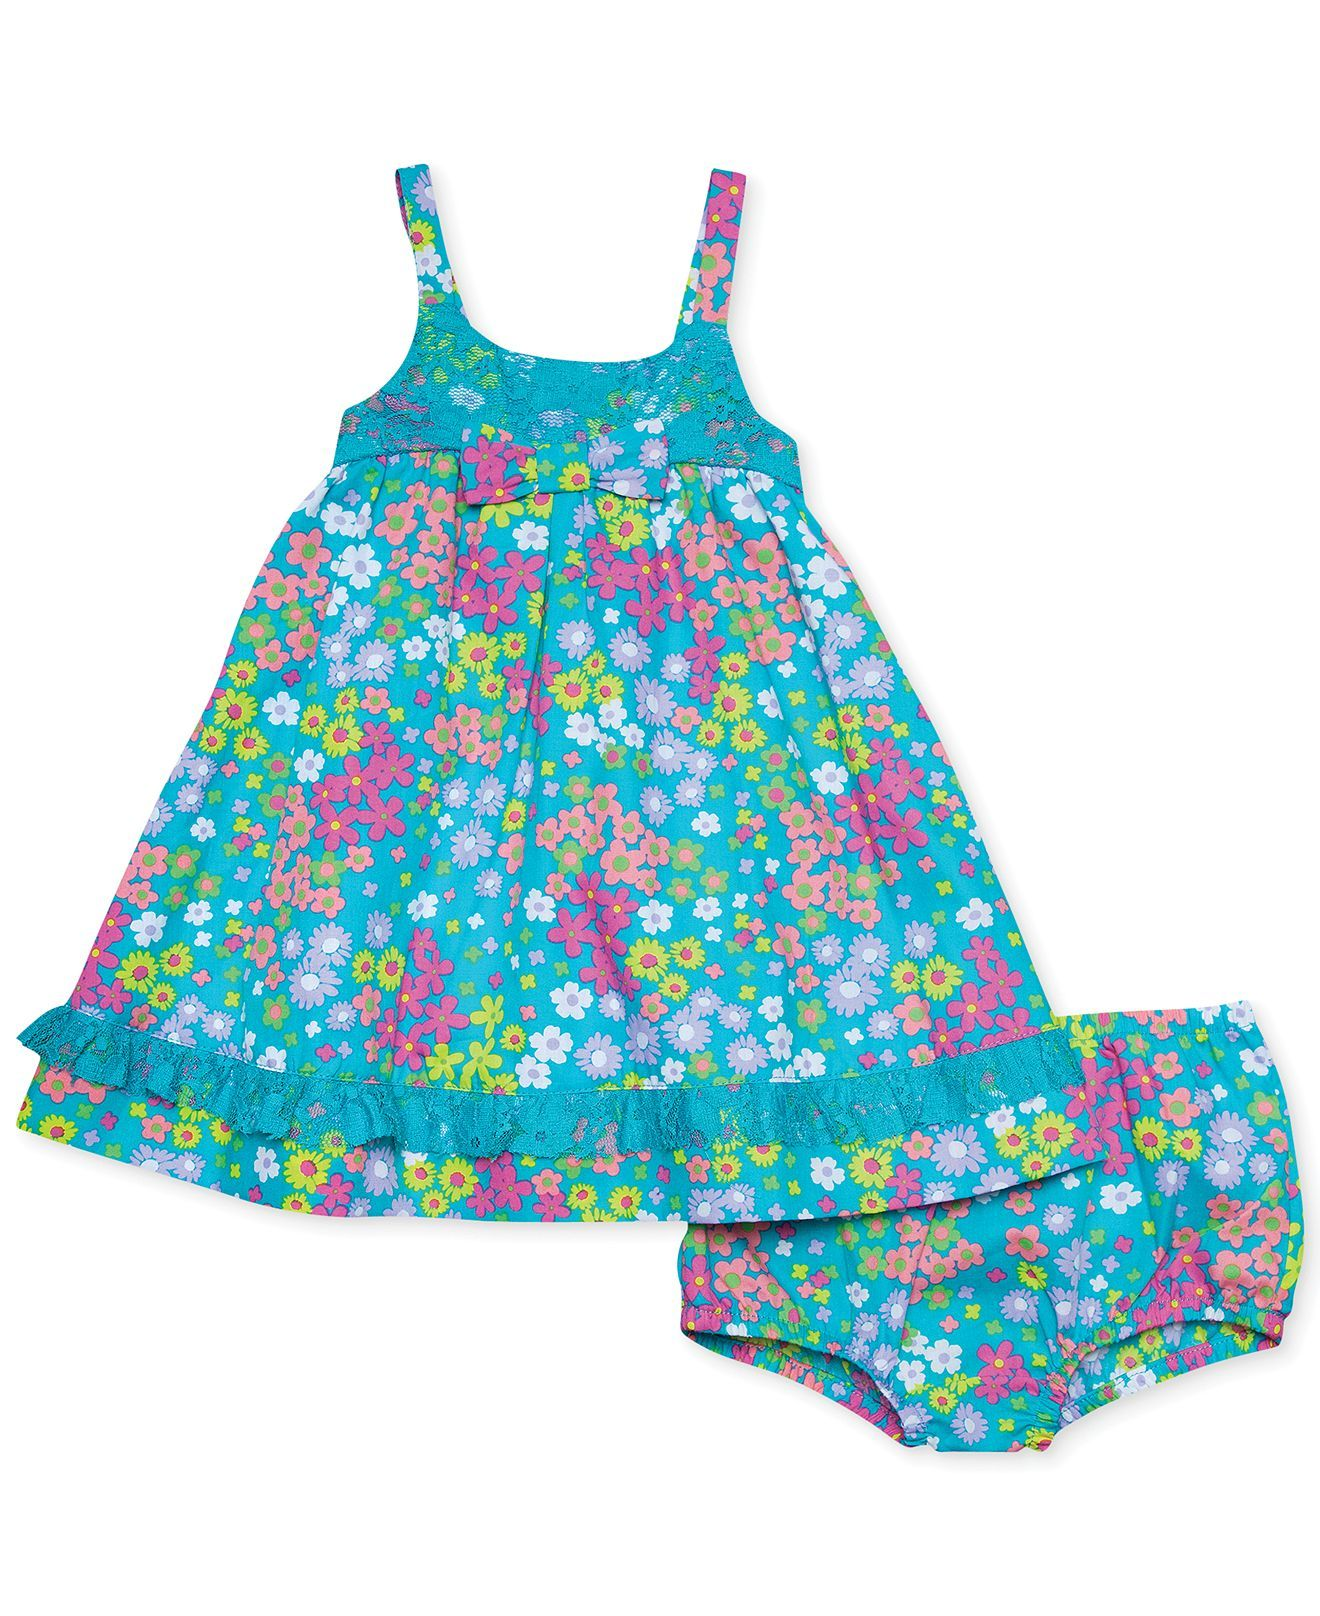 Penelope Mack Baby Girls Floral Dress Kids Baby Girl 0 24 months